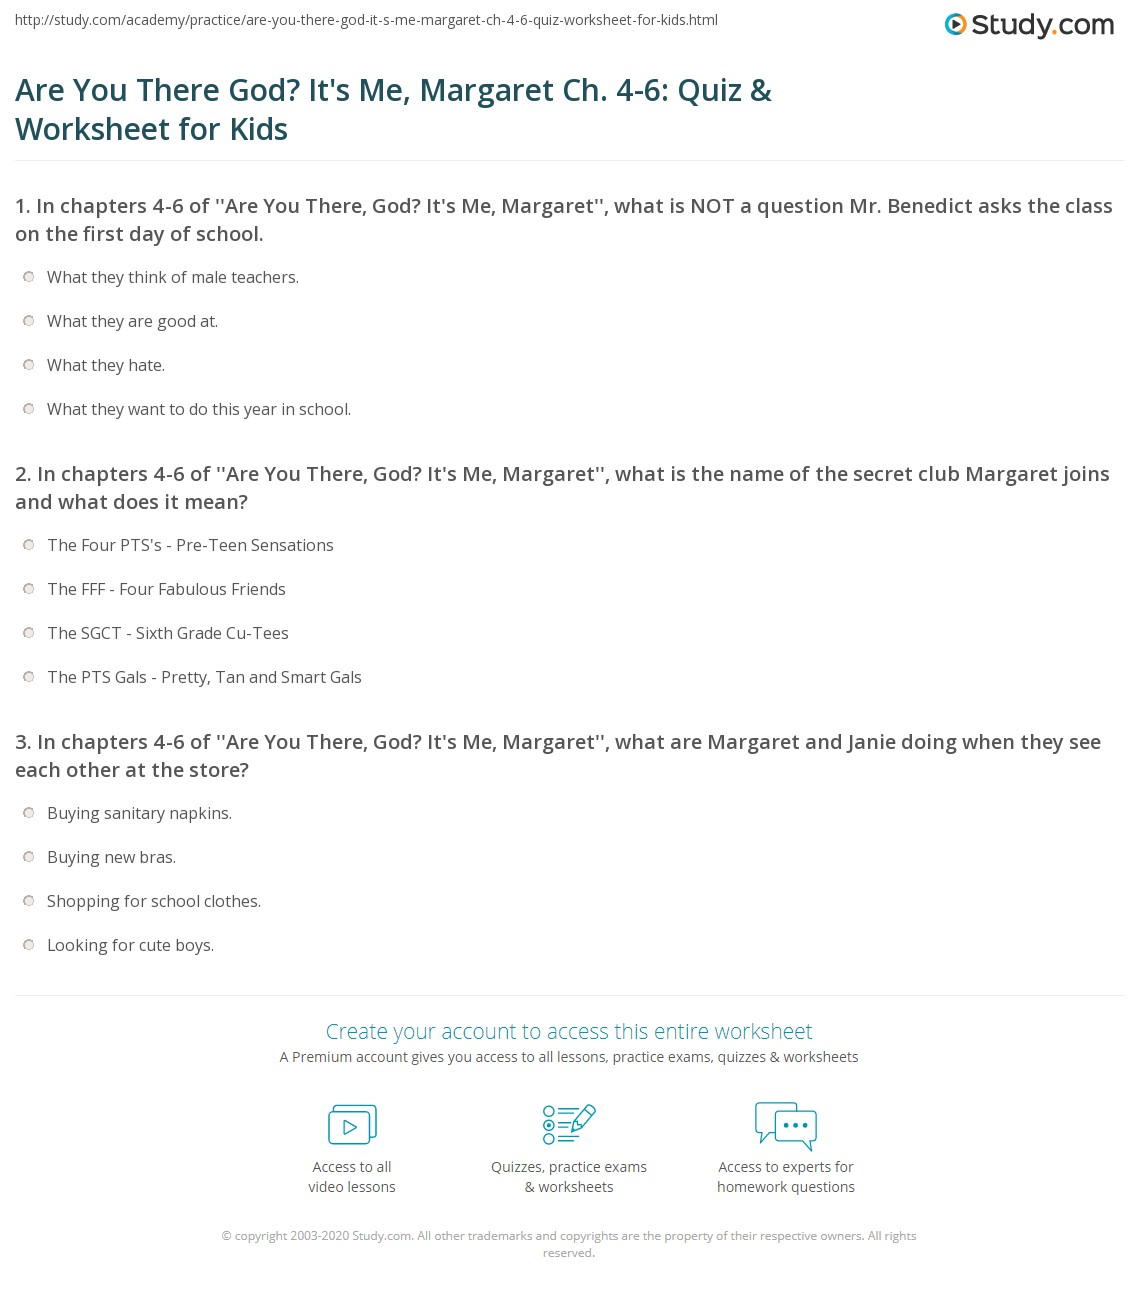 Are You There God It S Me Margaret Ch 4 6 Quiz Amp Worksheet For Kids